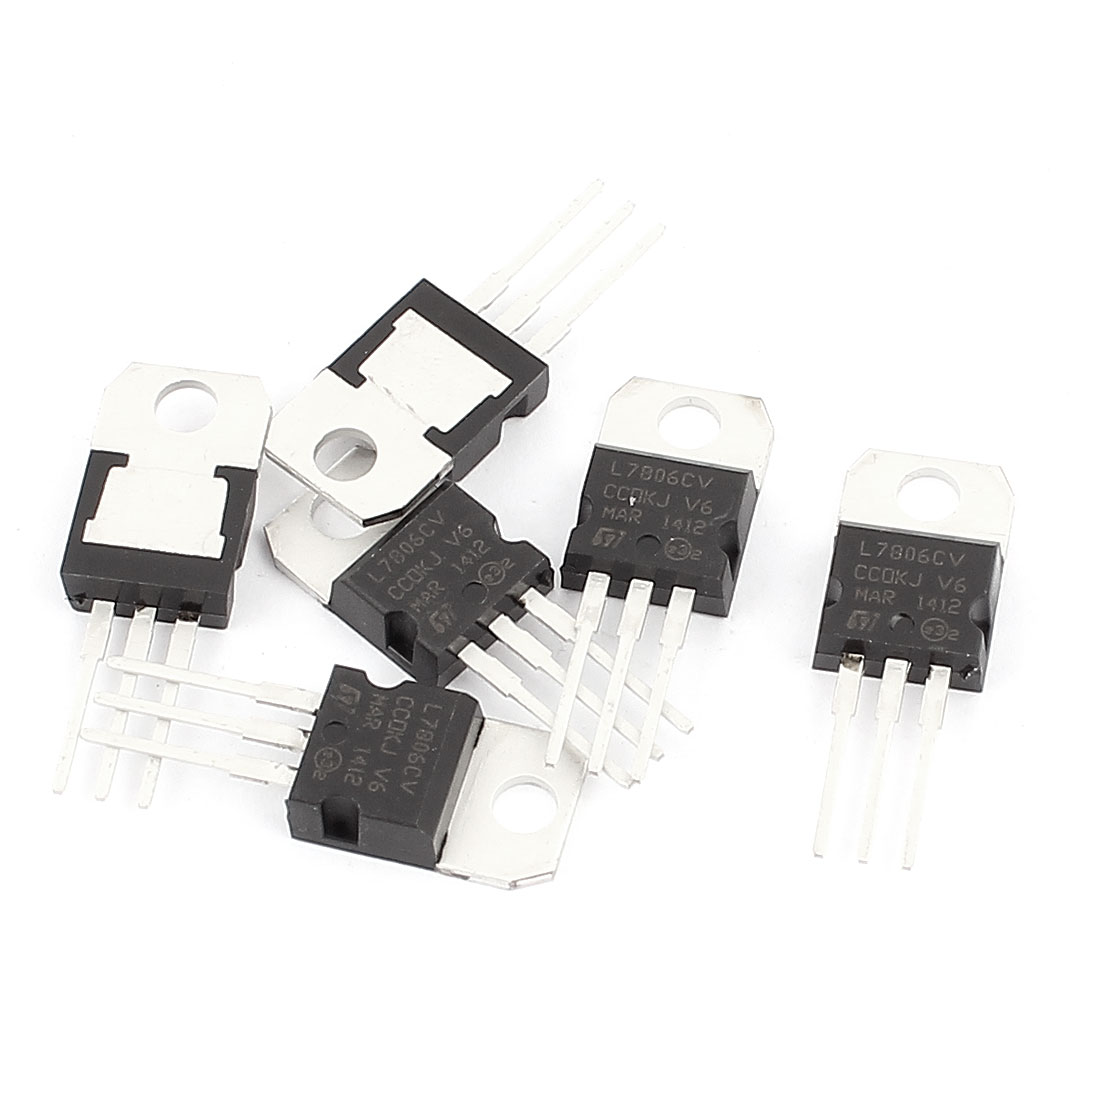 6 Pcs 6V 1A 3 Pin Terminals L7806CV Positive Voltage Regulator TO-220